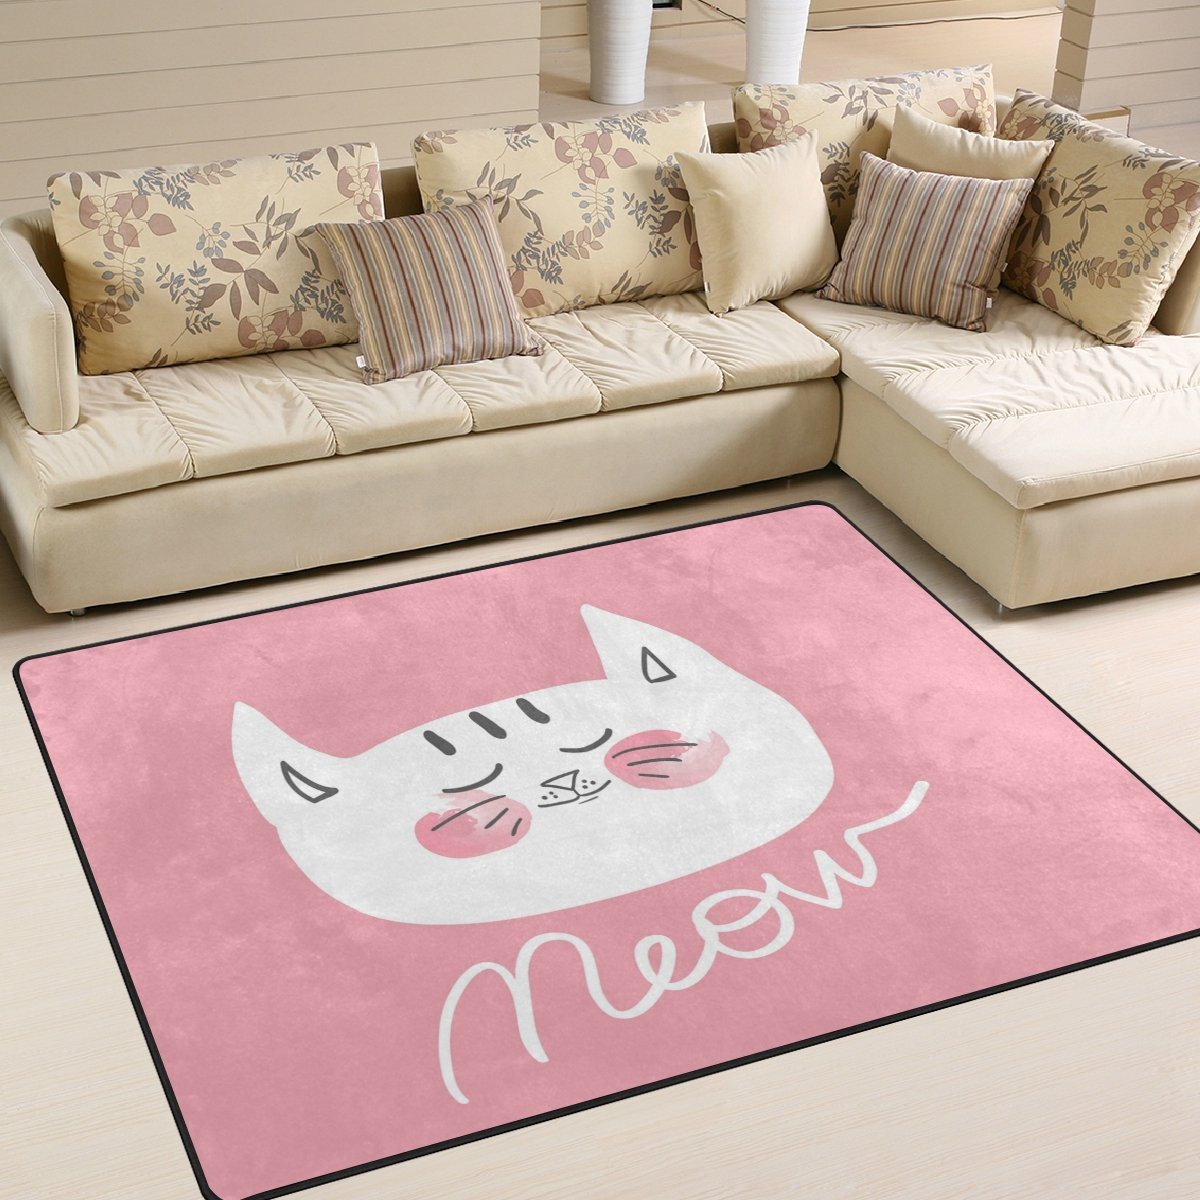 ALAZA Cute Cat Area Rug Rugs for Living Room Bedroom 5'3 x 4' g2260192p147c162s244